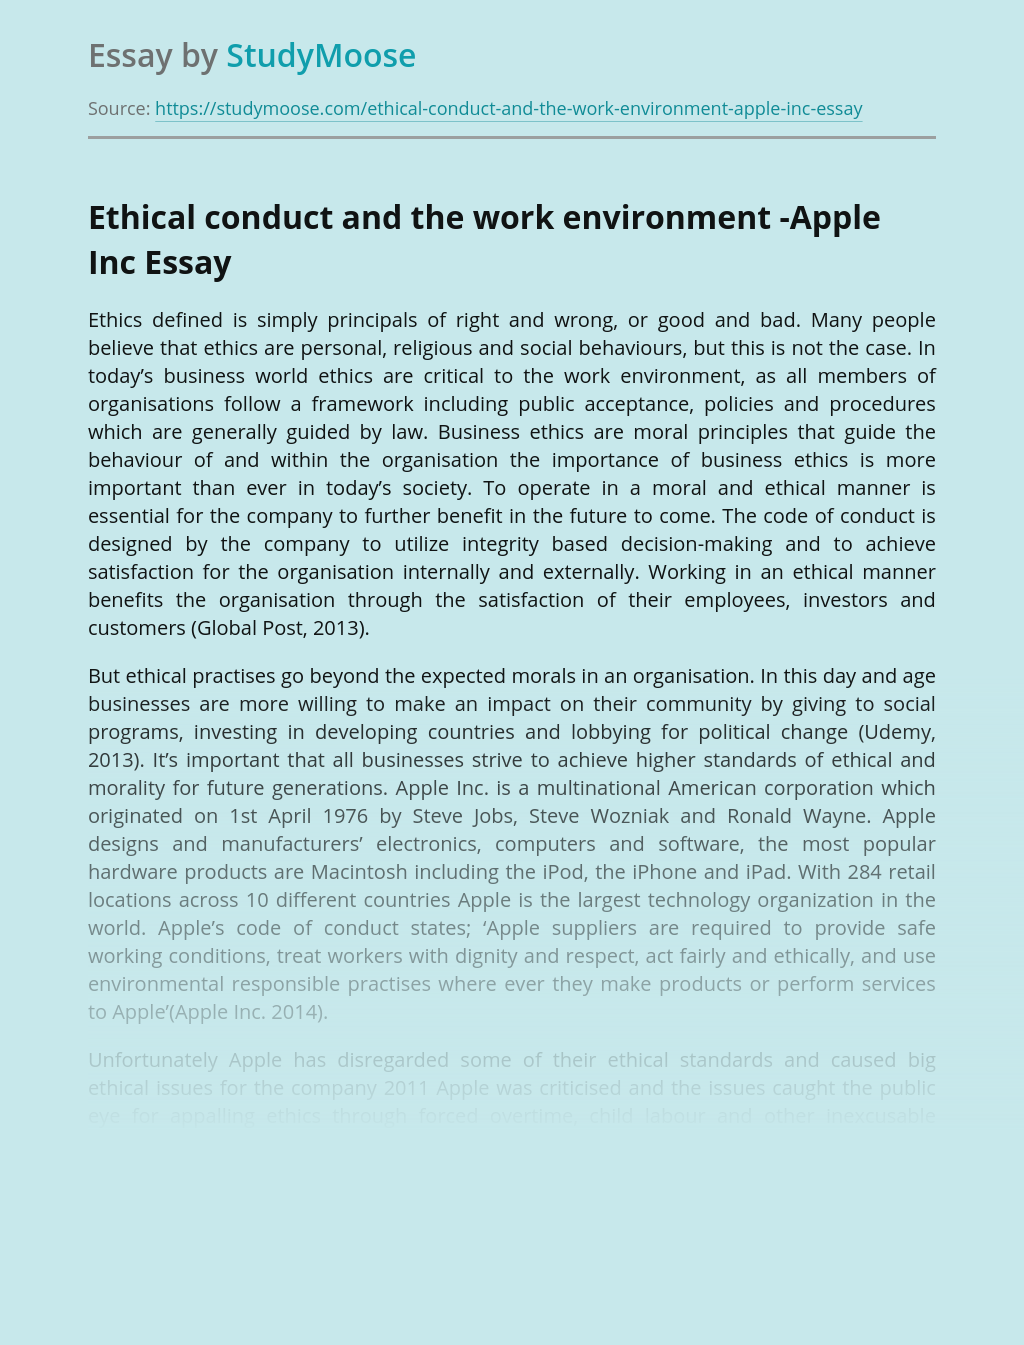 Ethical conduct and the work environment -Apple Inc